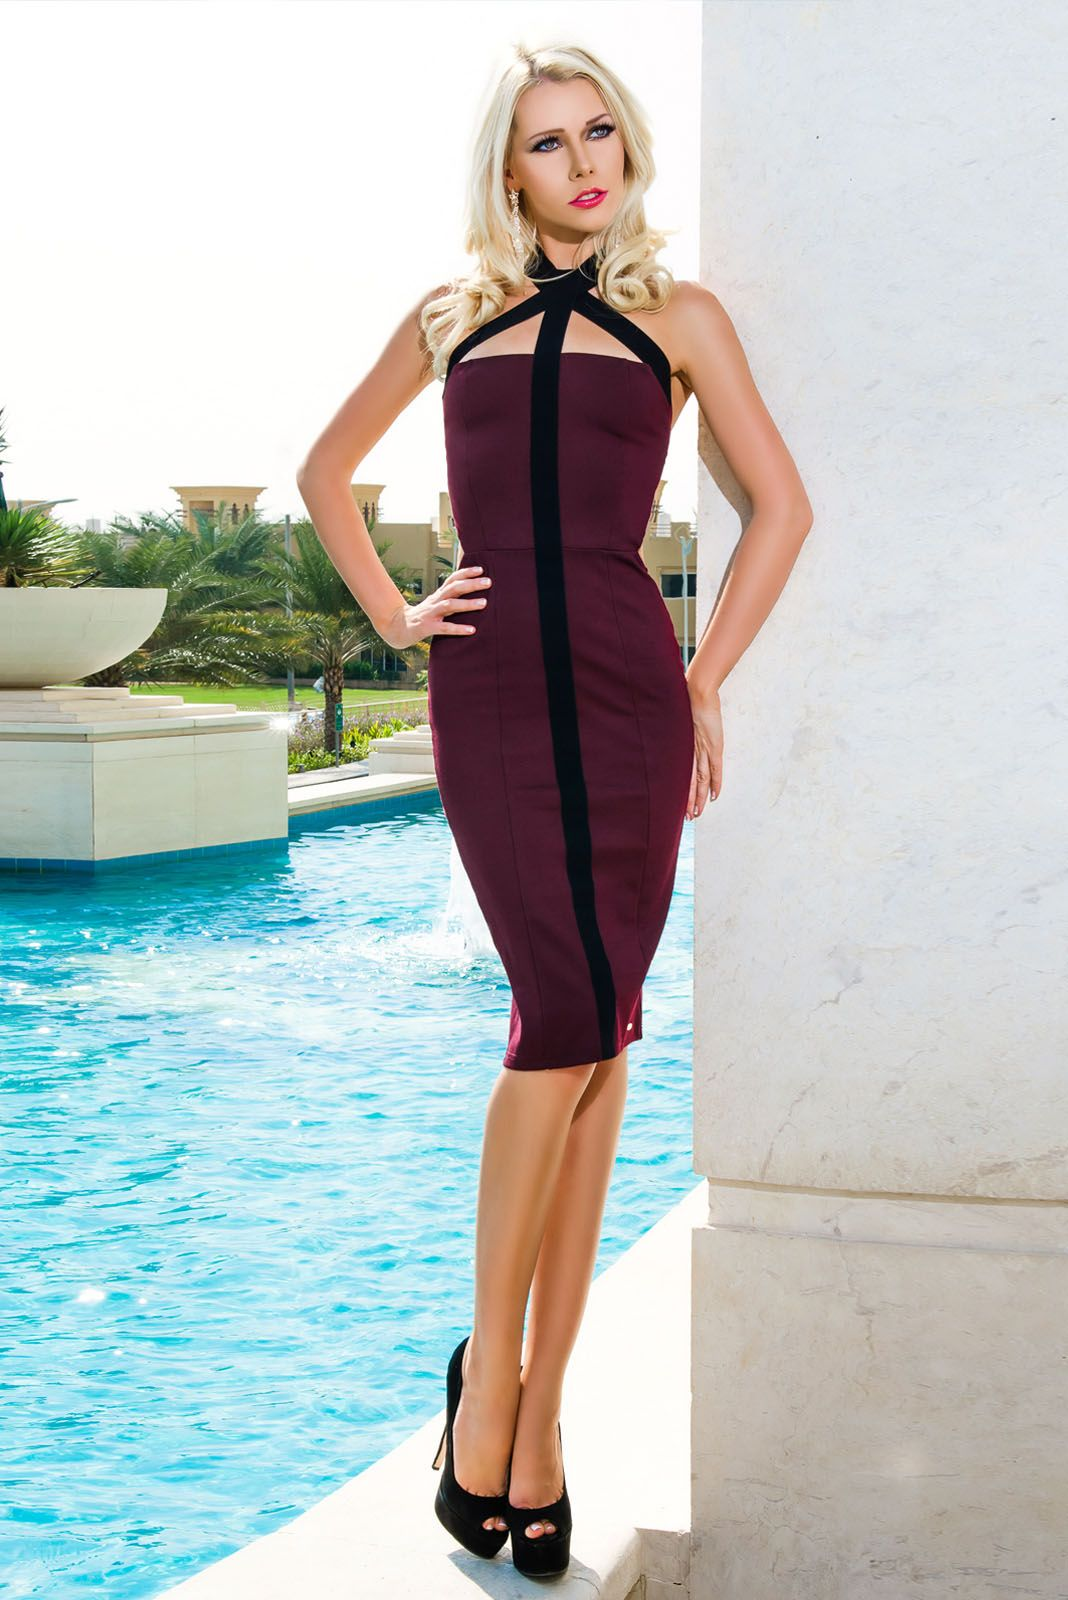 Turn heads in this burgundy backless dress with an unusual halter neckline.